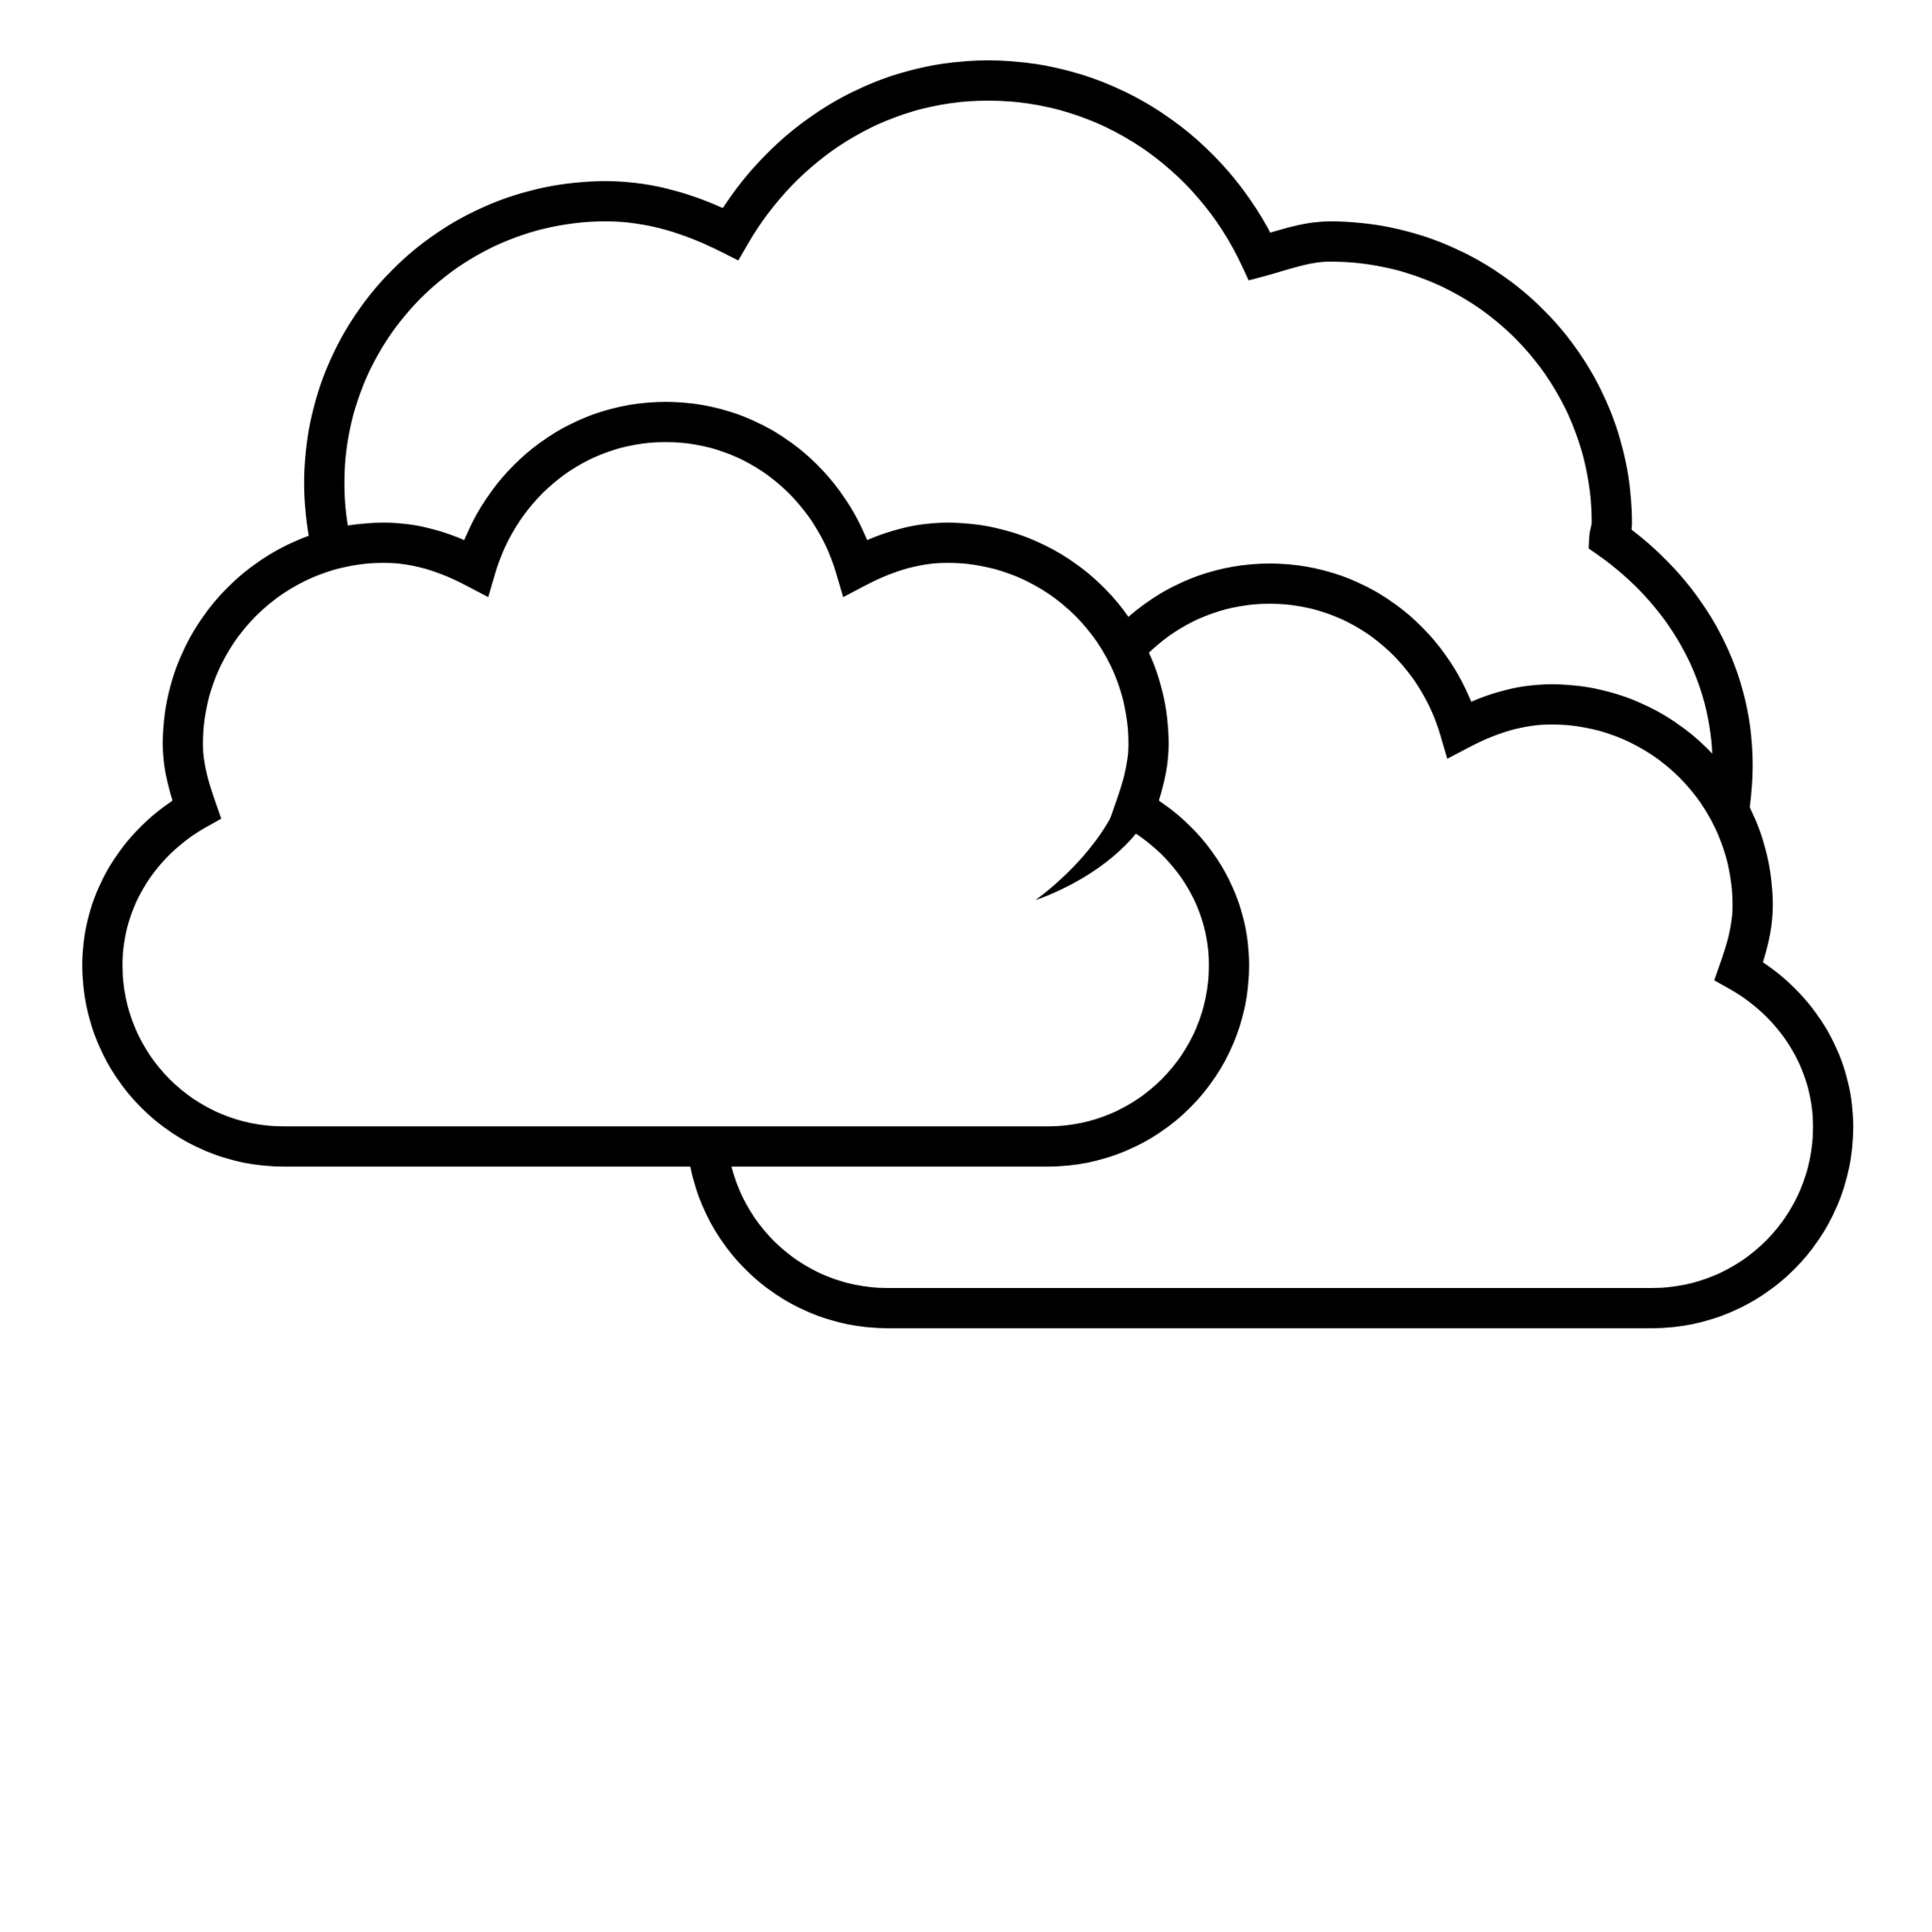 Cloud With Wind Colouring Pages 148562 Png 2280 2280 Black And White Clouds Weather Icons Cloud Icon